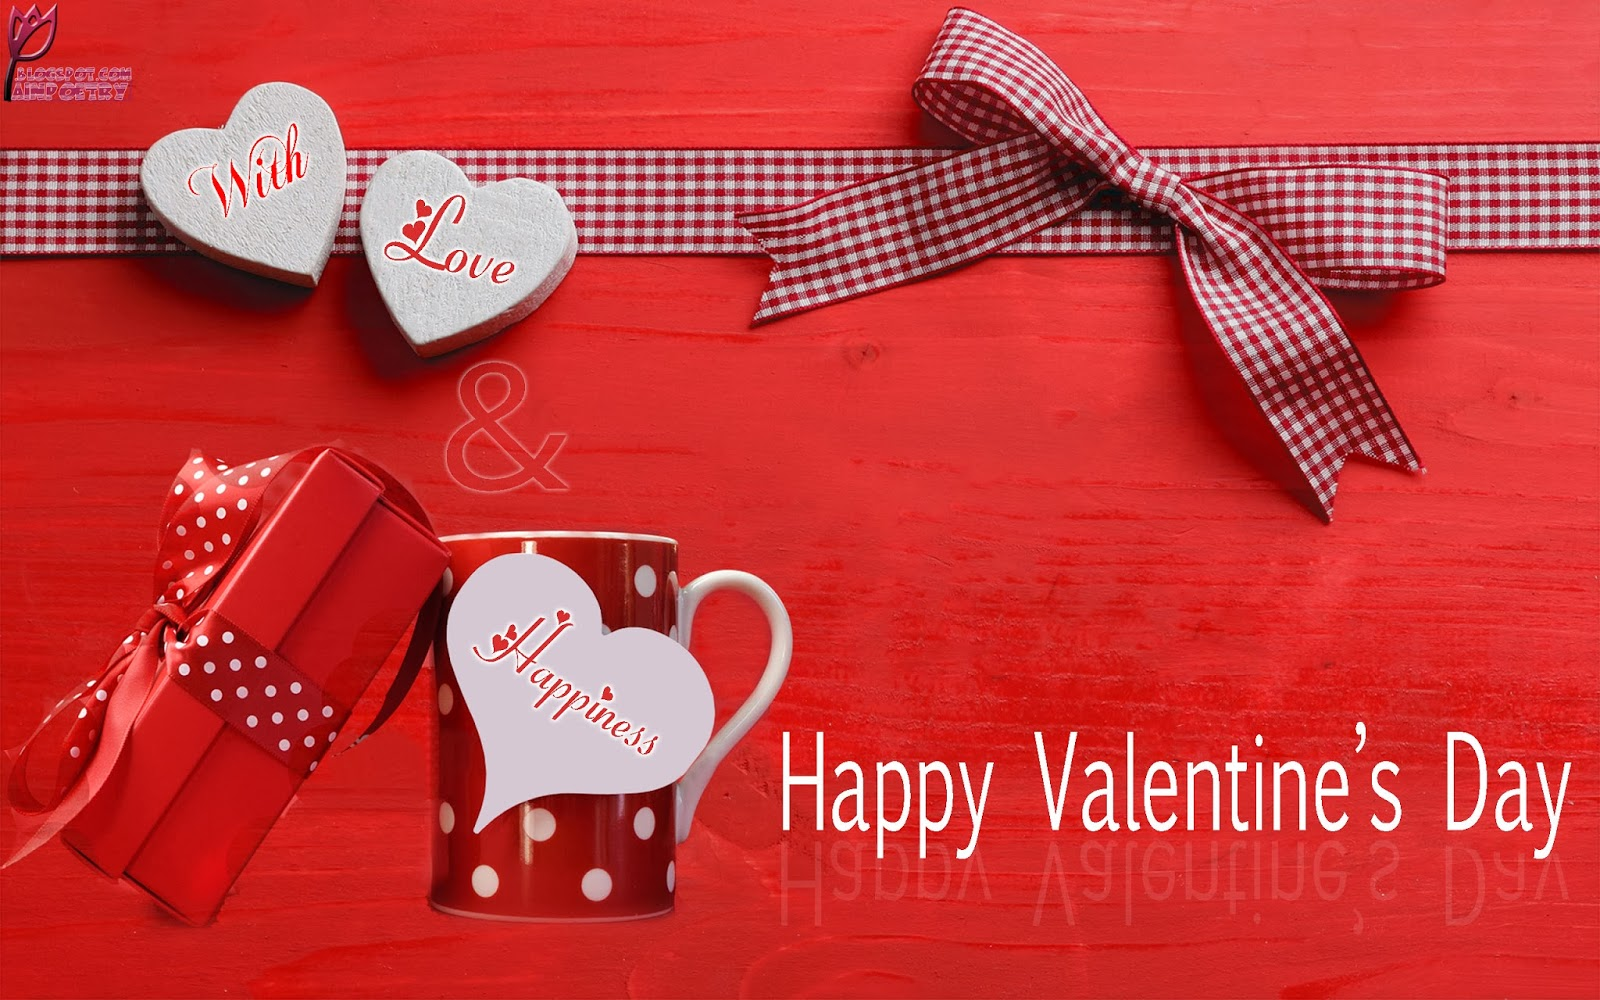 Happy-Valentines-Day-Wallpaper-Image-Photo-With-A-Gift-HD-Wide